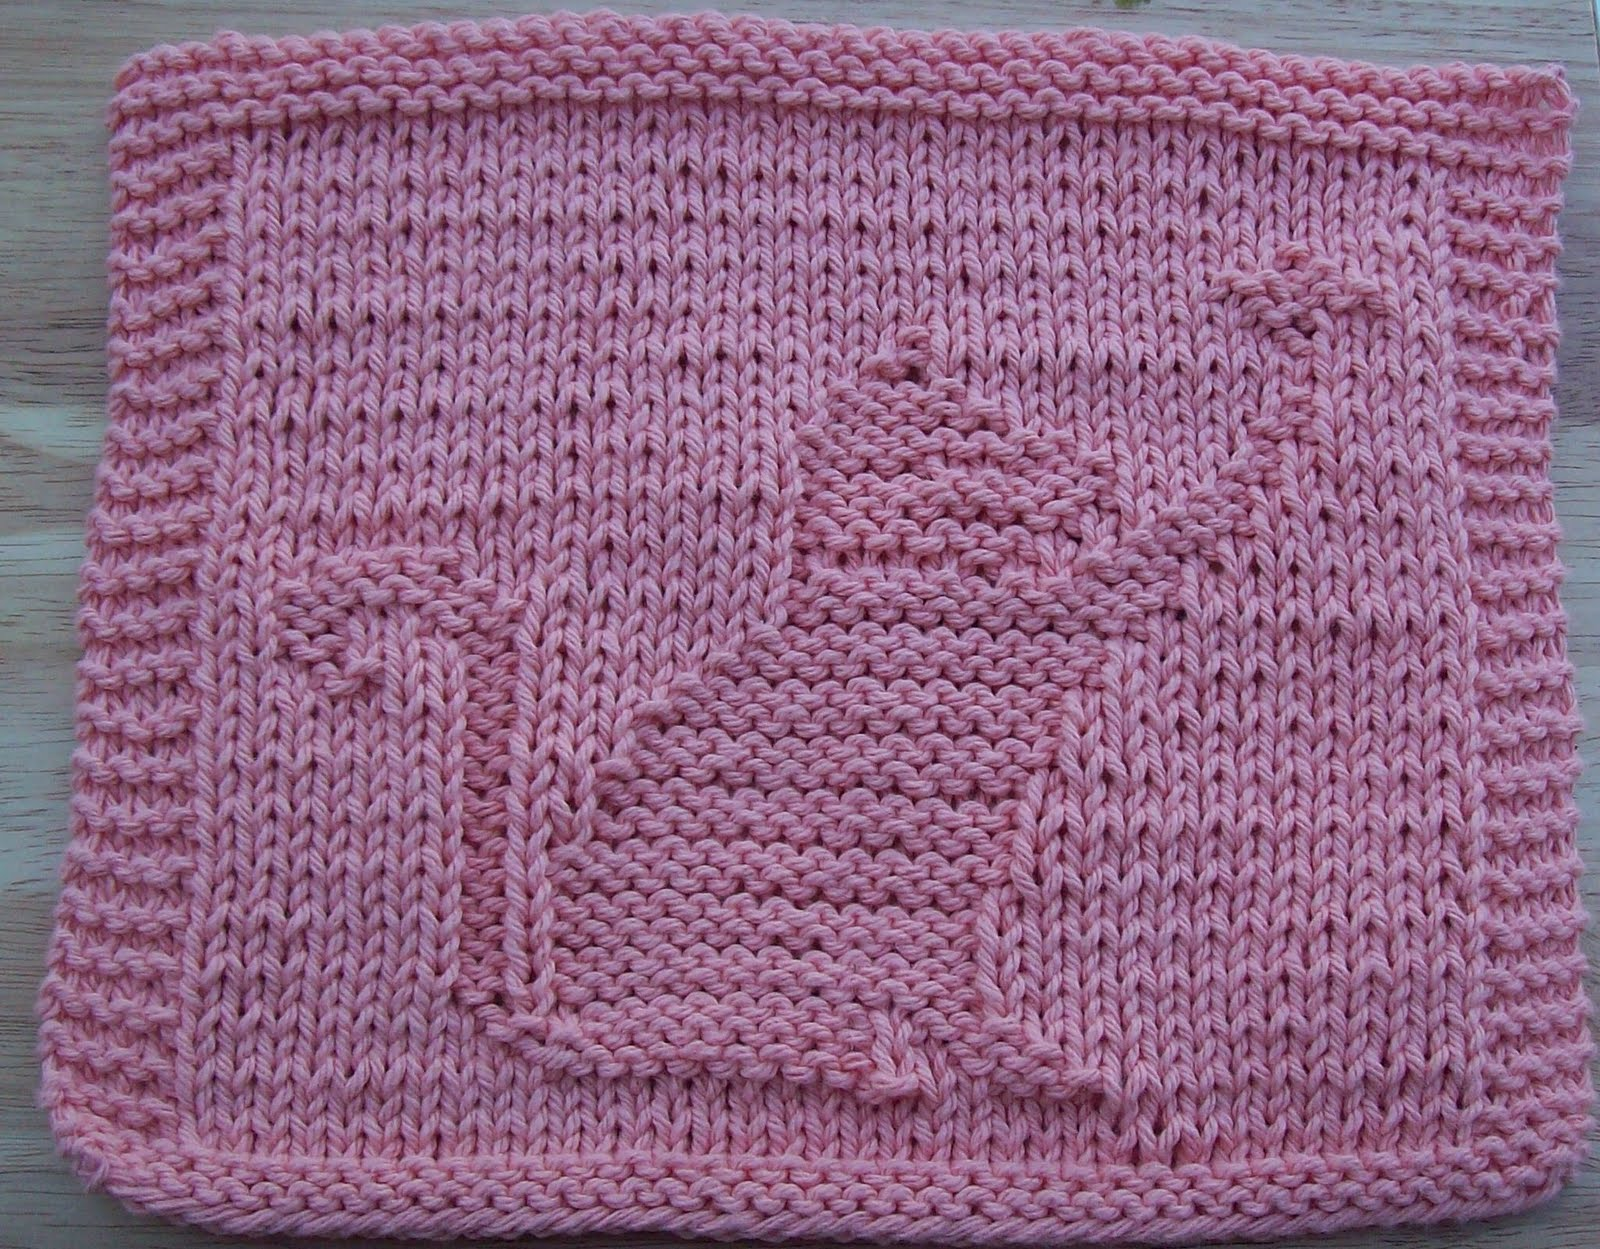 Free Knitting Pattern Butterfly Dishcloth : DigKnitty Designs: Cat With Butterfly Knit Dishcloth Pattern